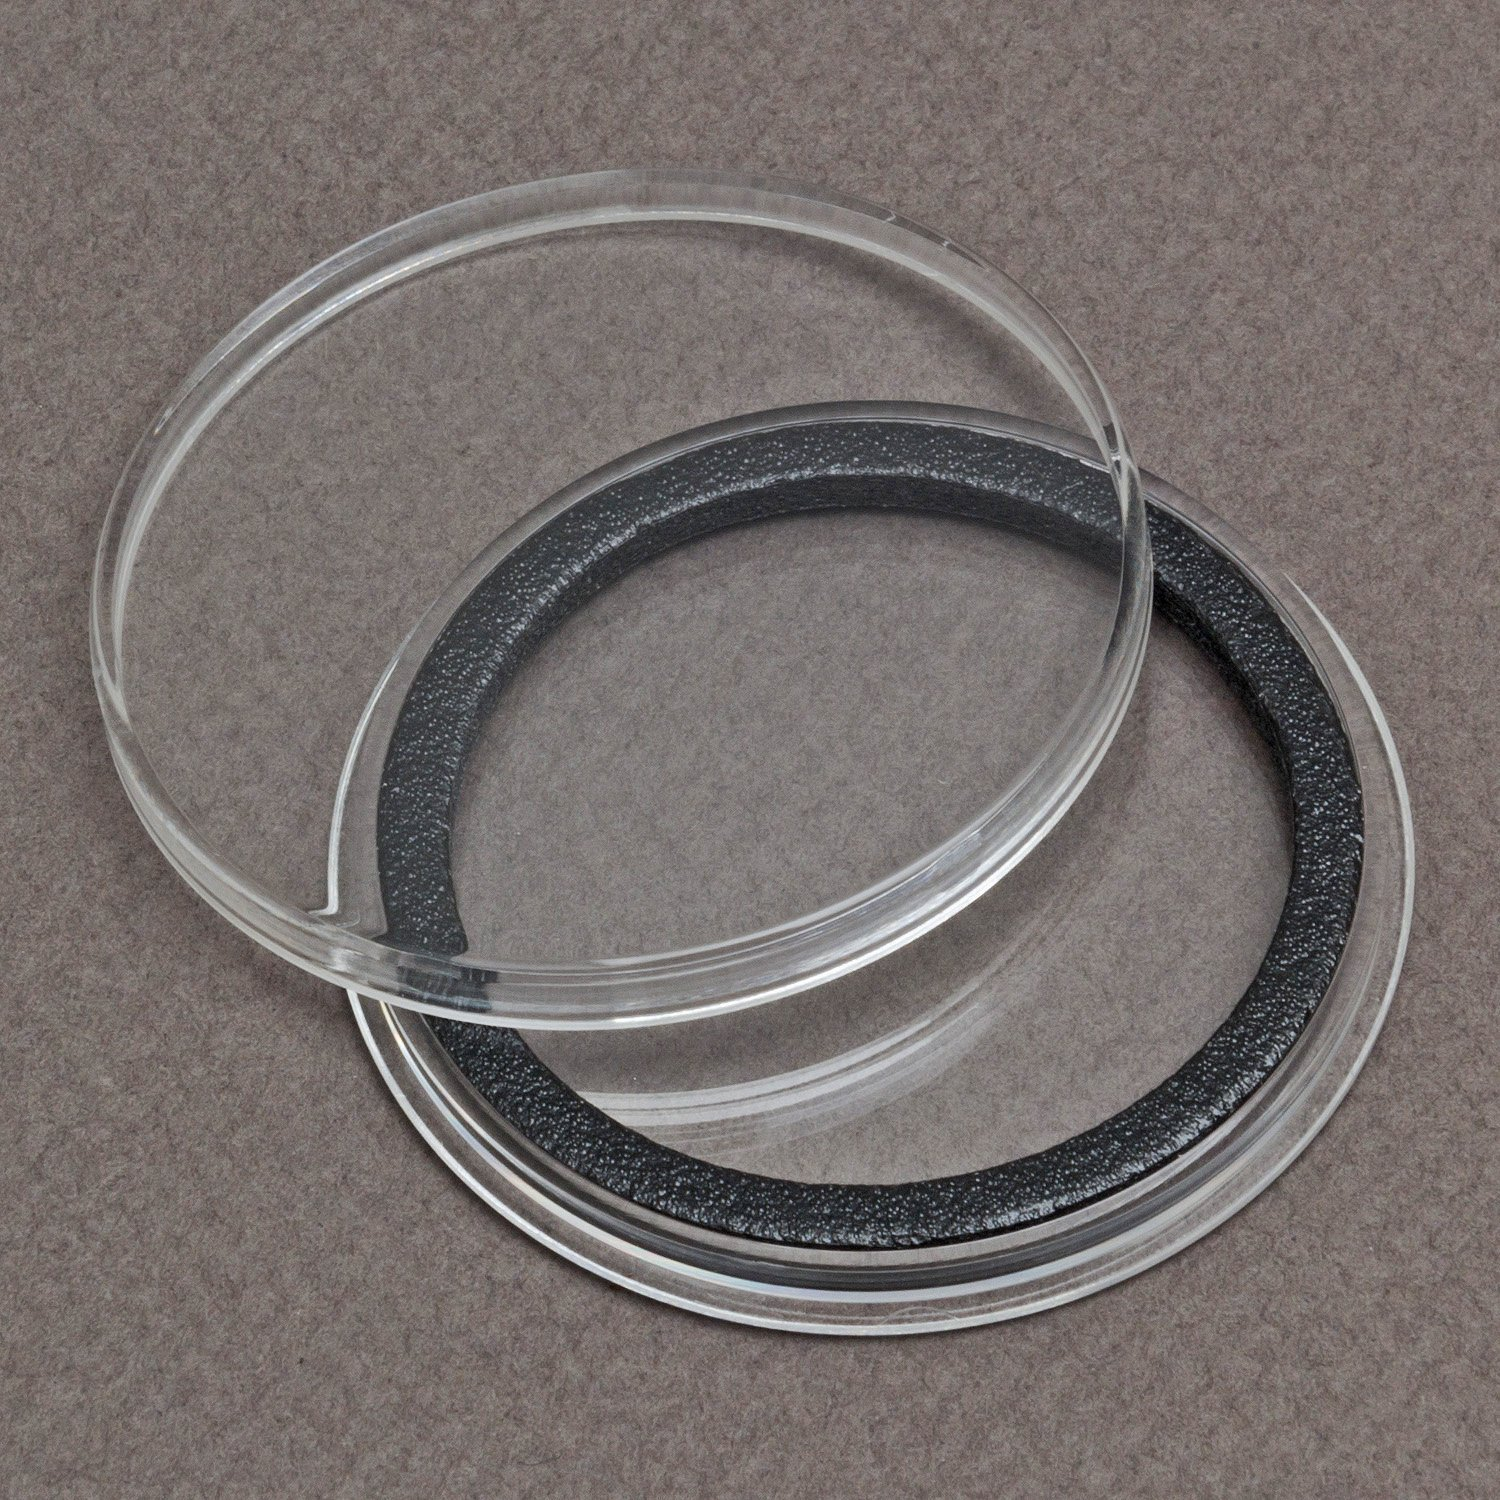 10 Air-Tite X38mm Ring Coin Holder Capsules for Coins Less Than 3.96mm Thick